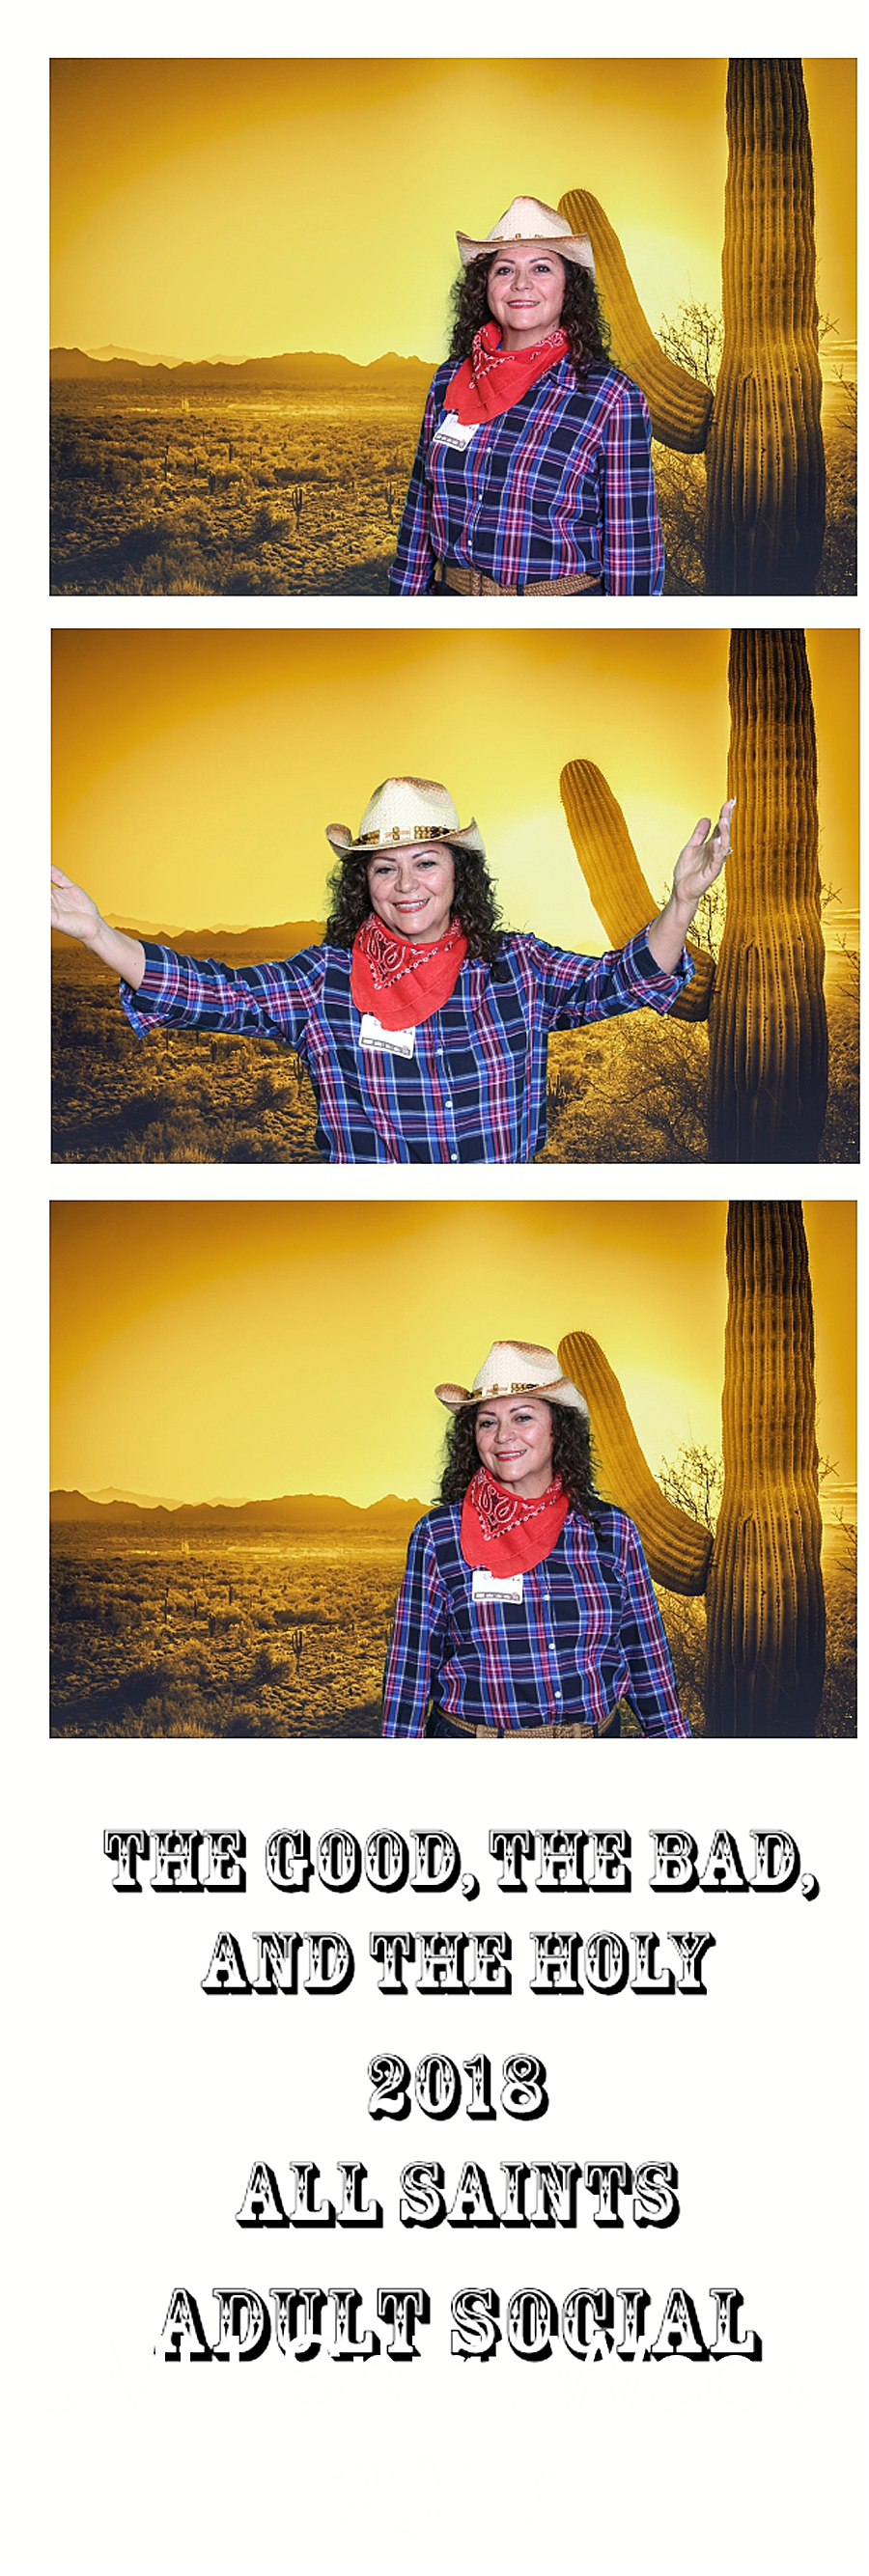 Knoxville Photo Booth_1314.jpg